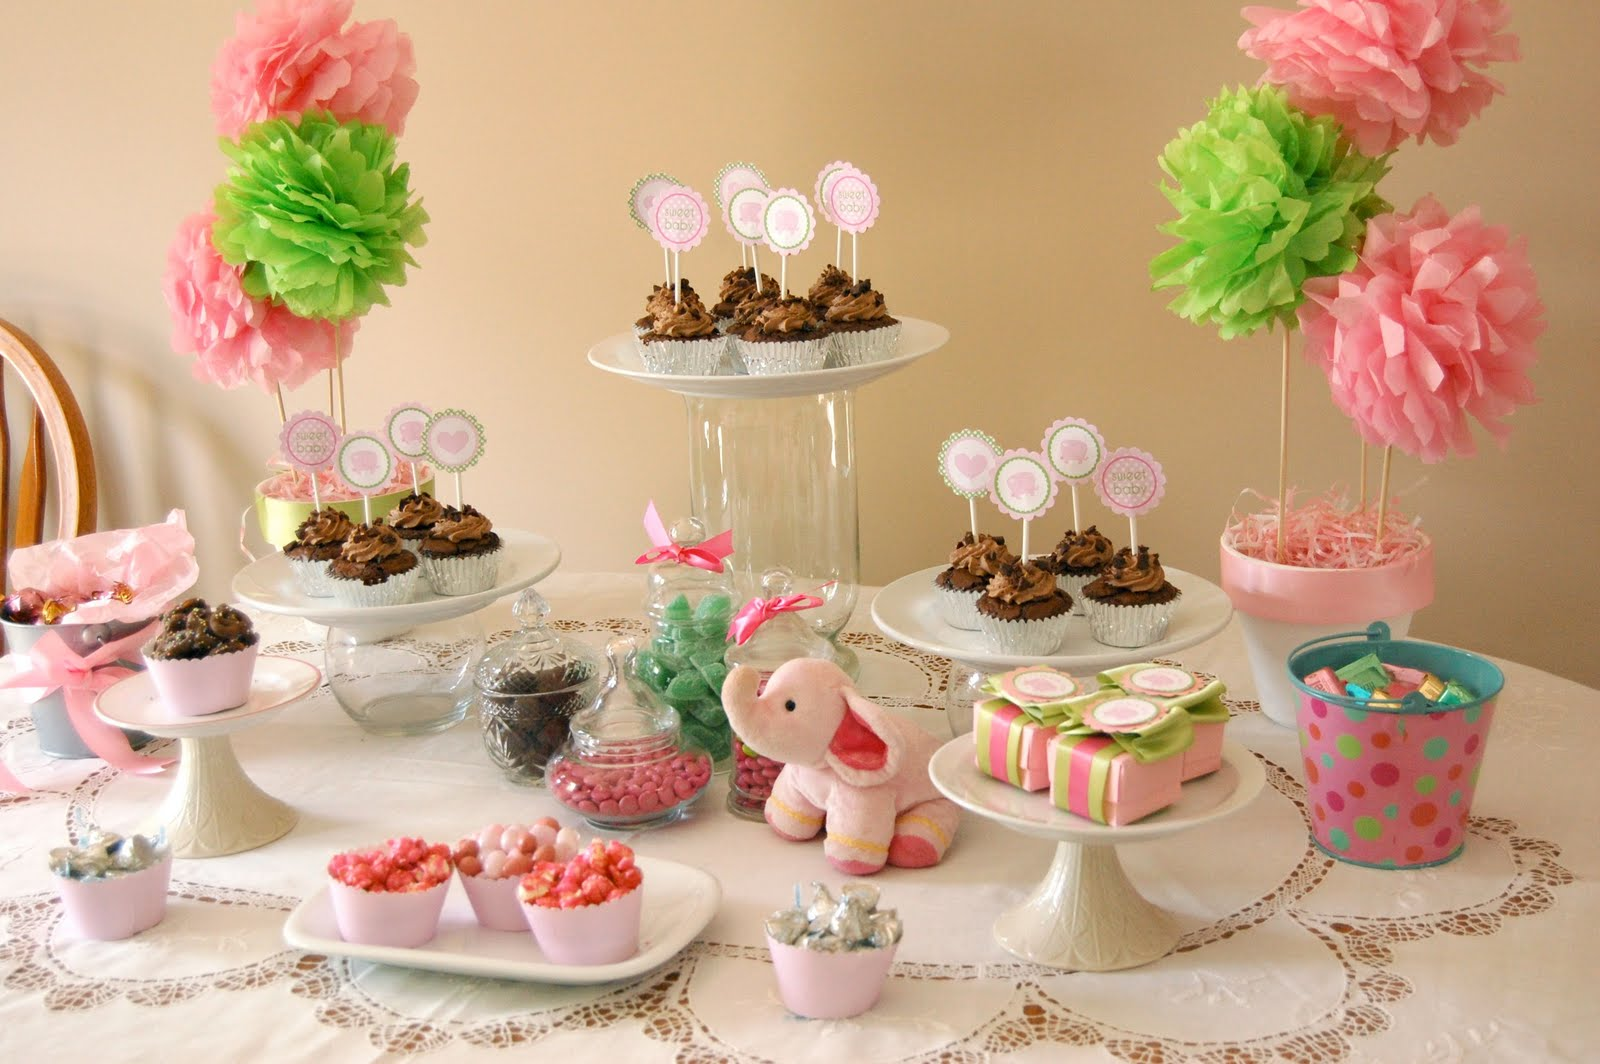 the pink elephant baby shower turned out really nicely it was very